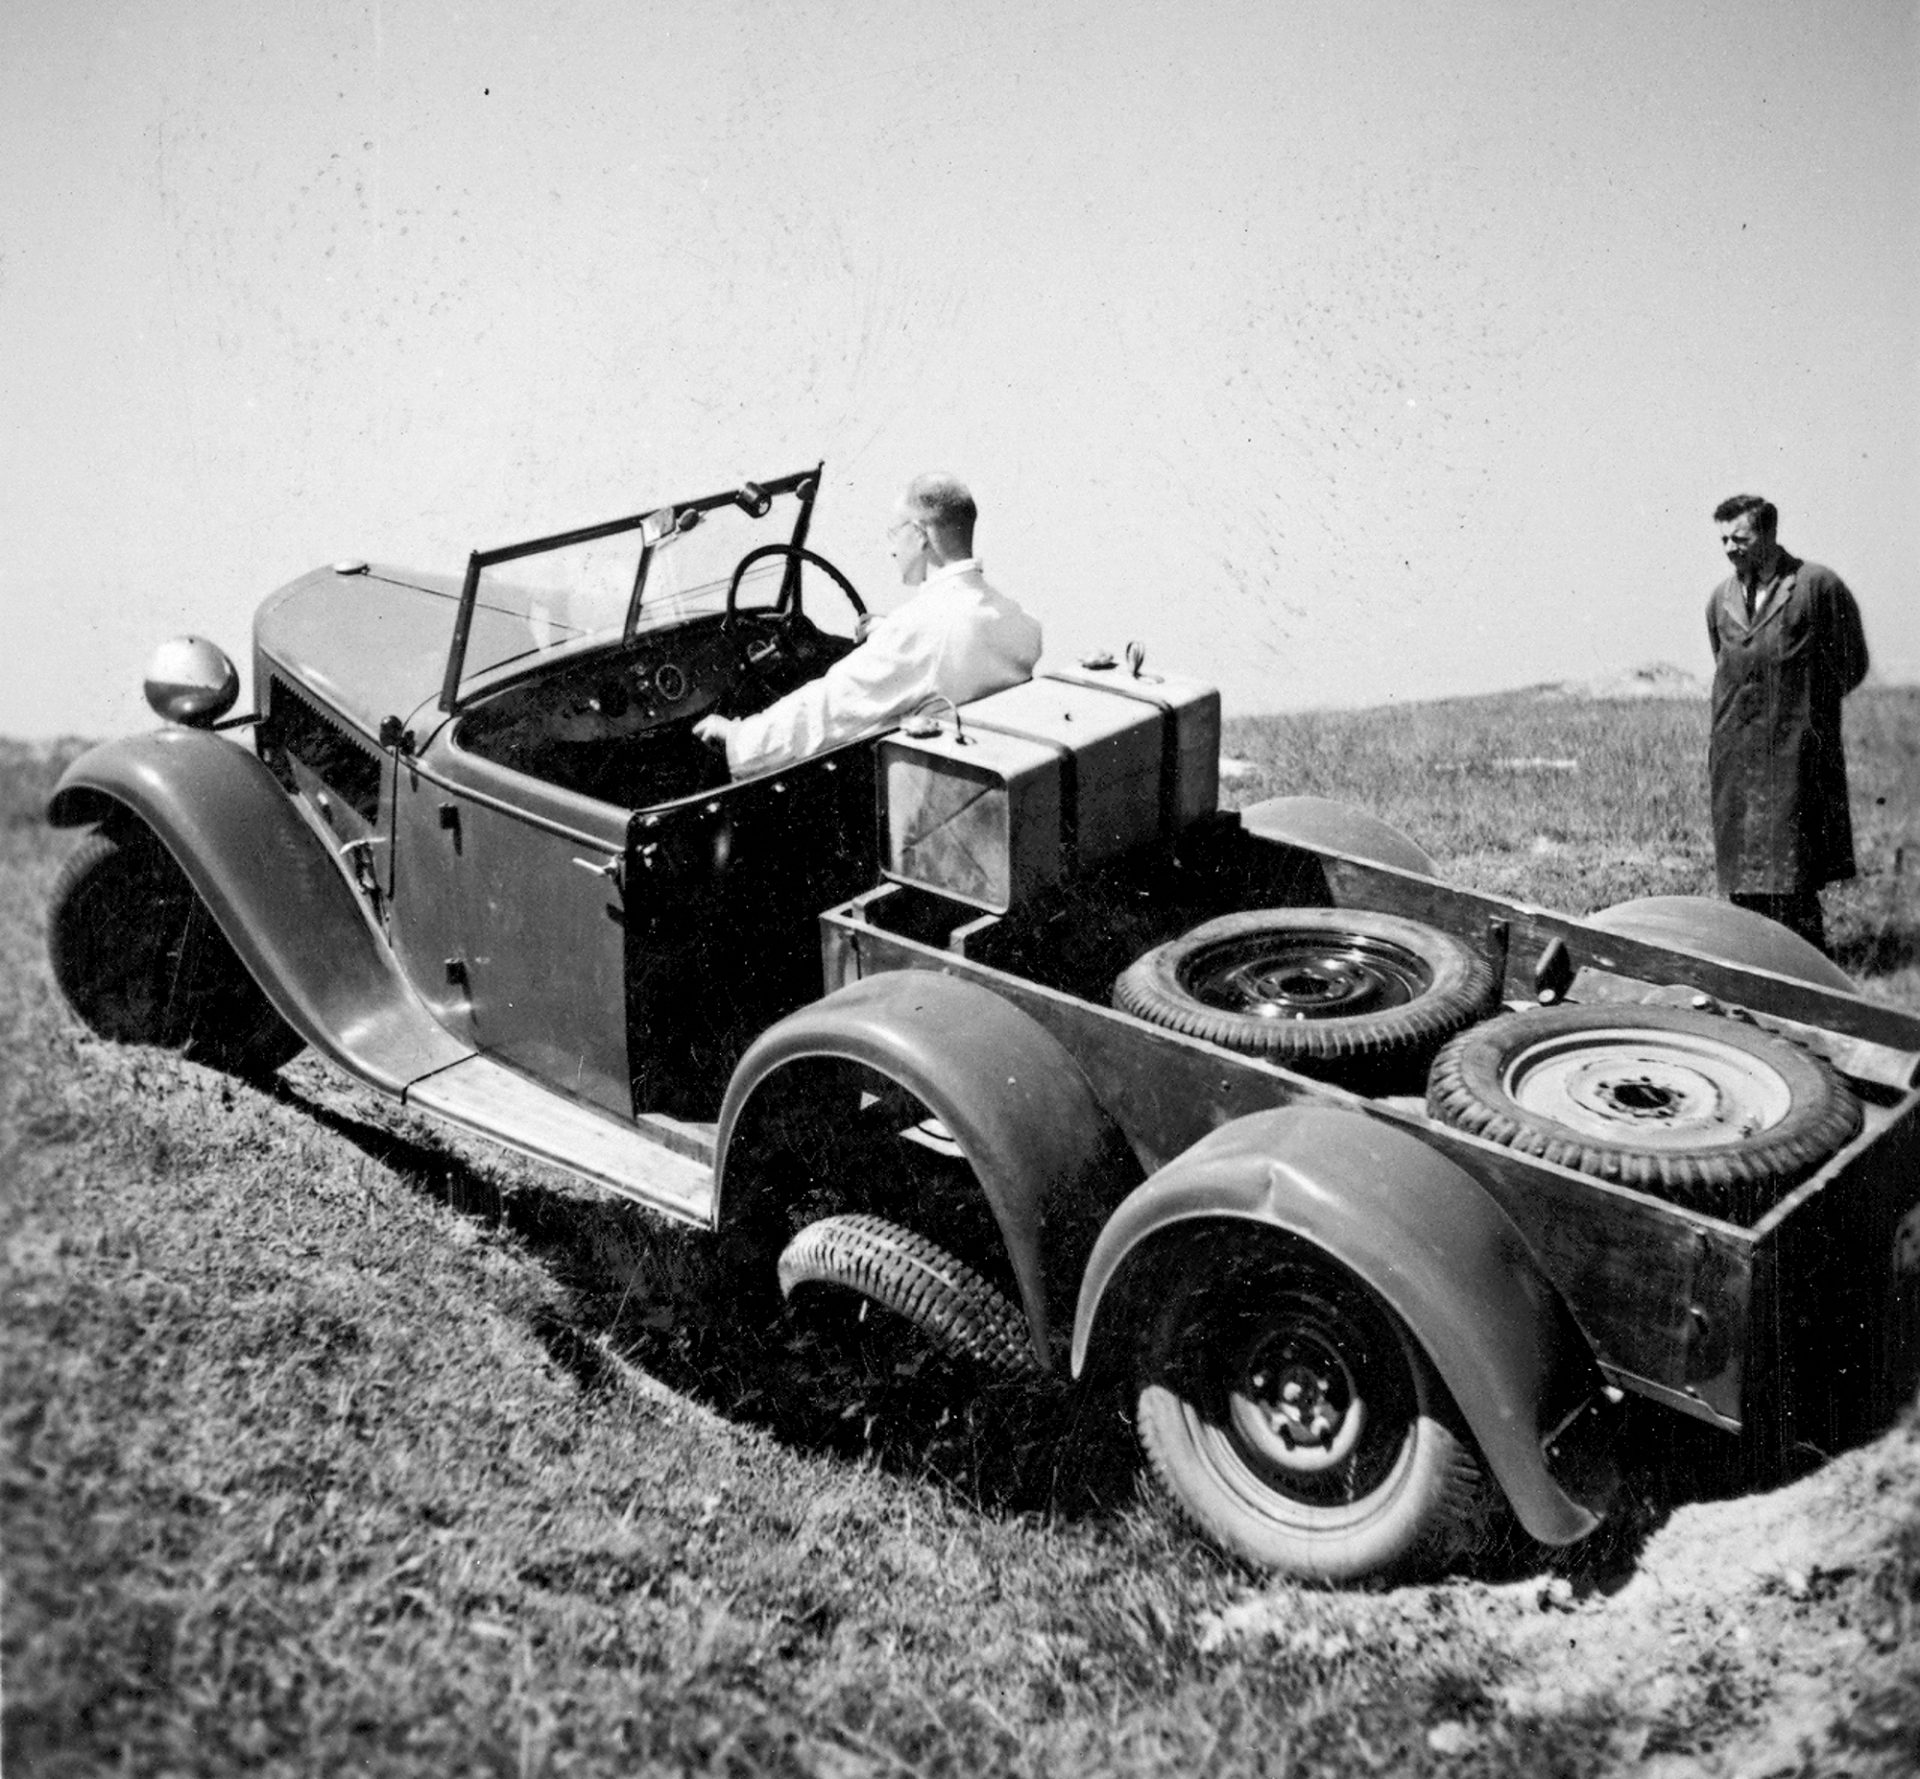 Twice the Traction, a Hundred Times More Problems: A Brief History of 4×4, Part One